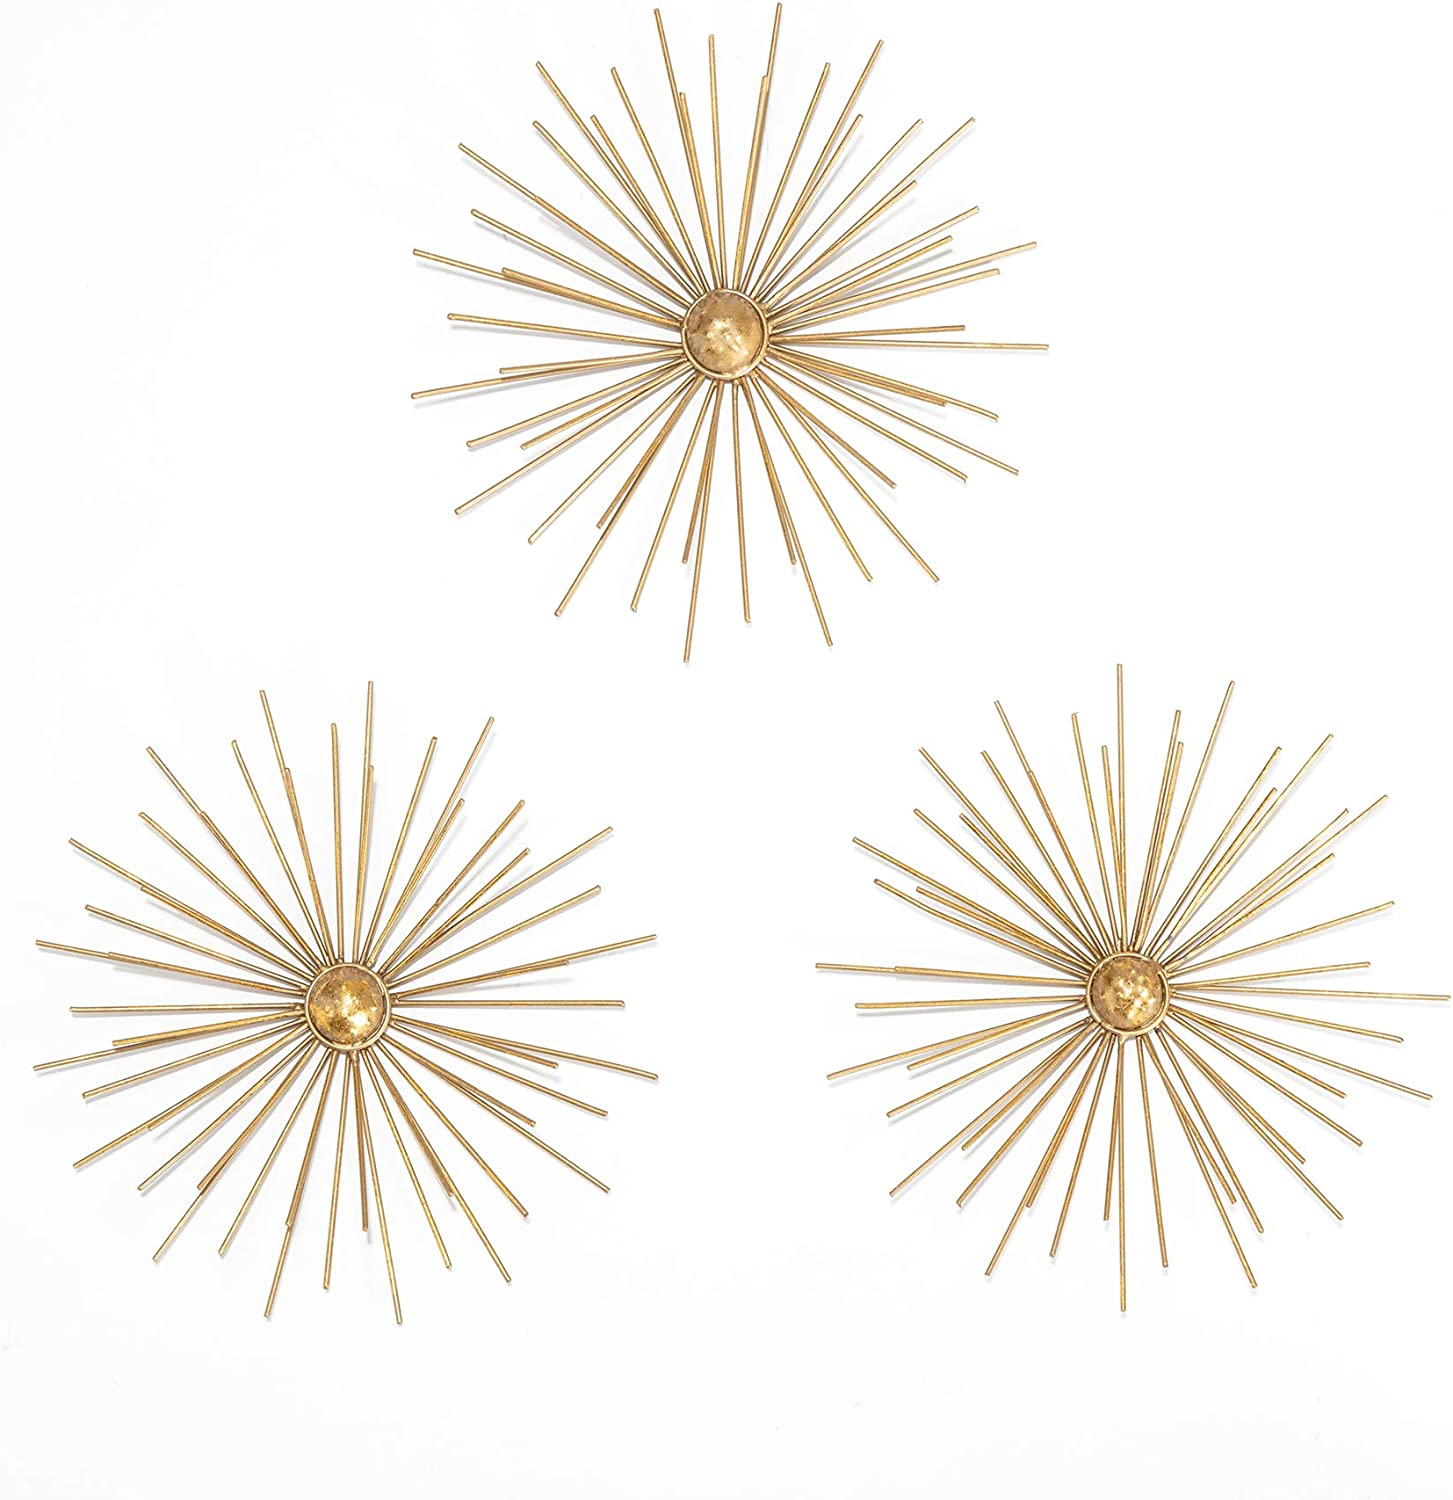 Habitat Cabers Gold Starbursts Metal Wall Art, metallic